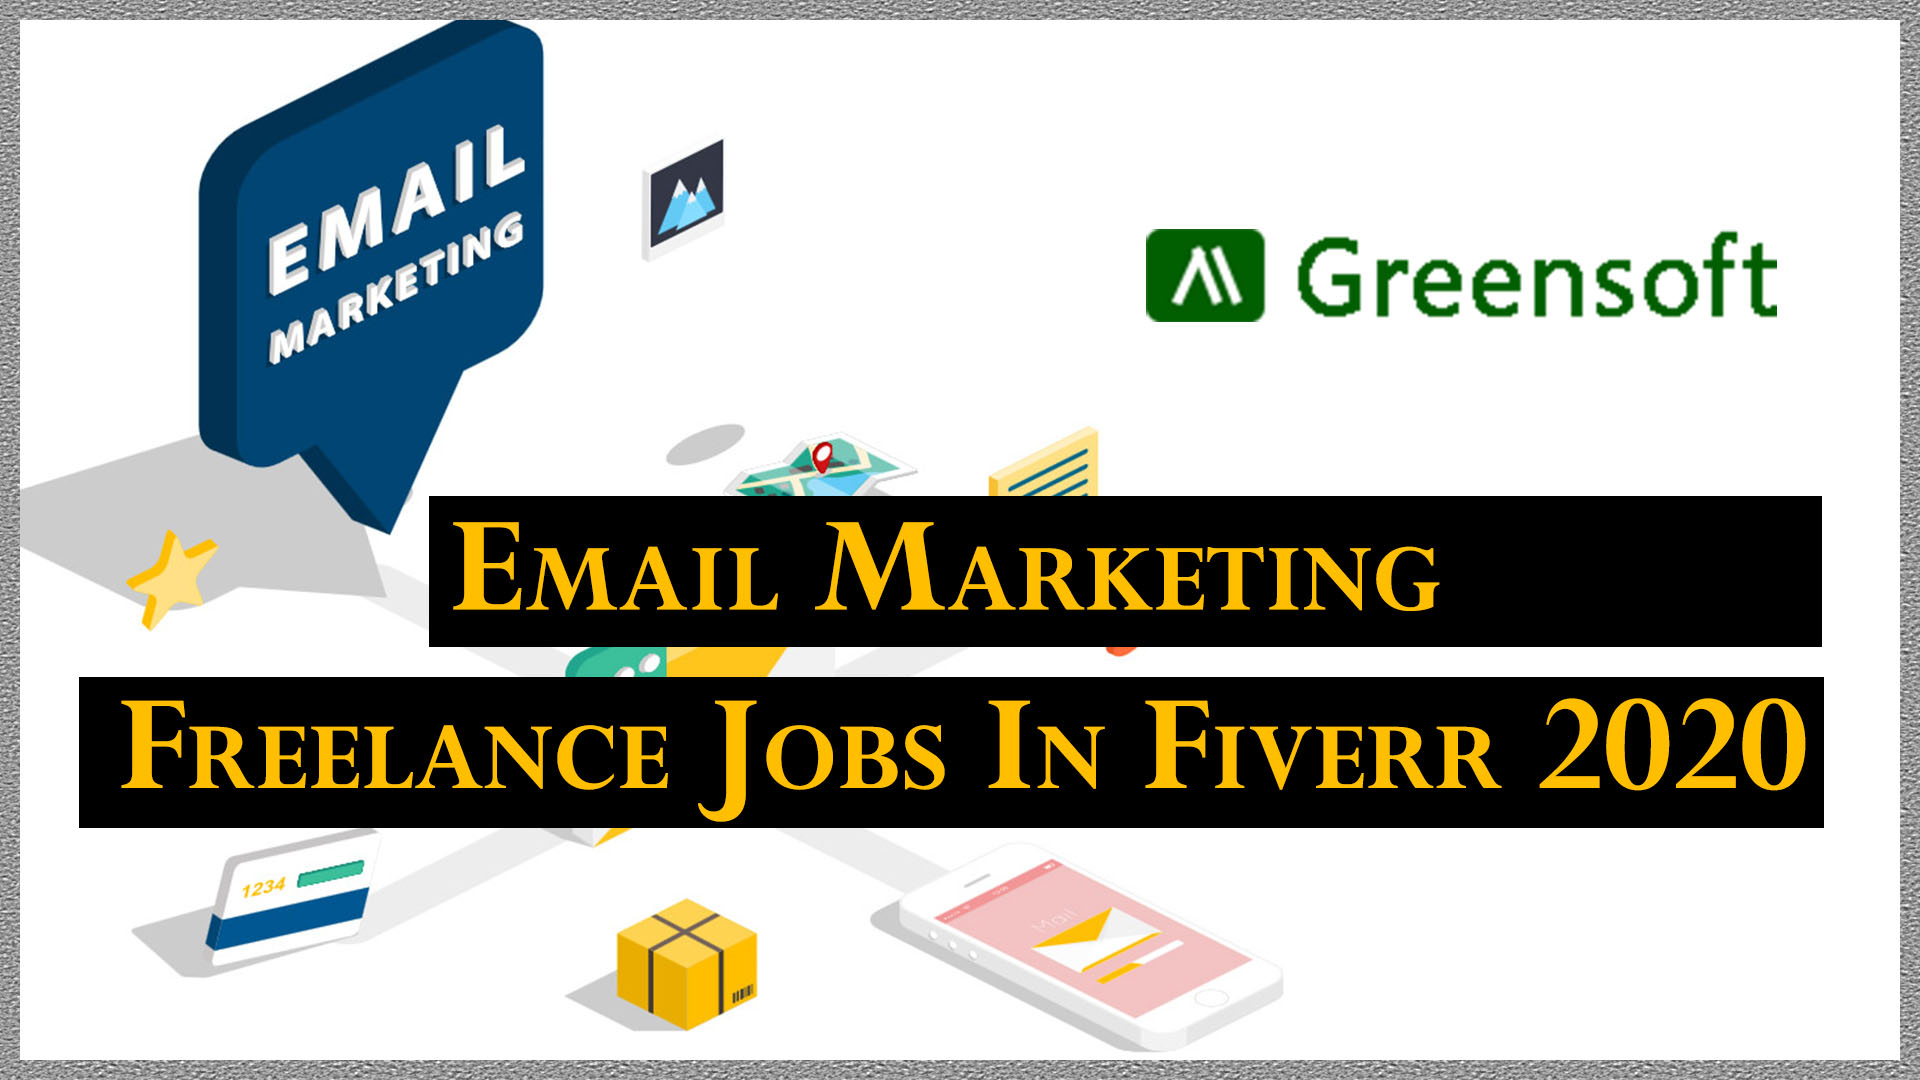 Email Marketing freelancing jobs in fiverr, greensoftdhaka.com